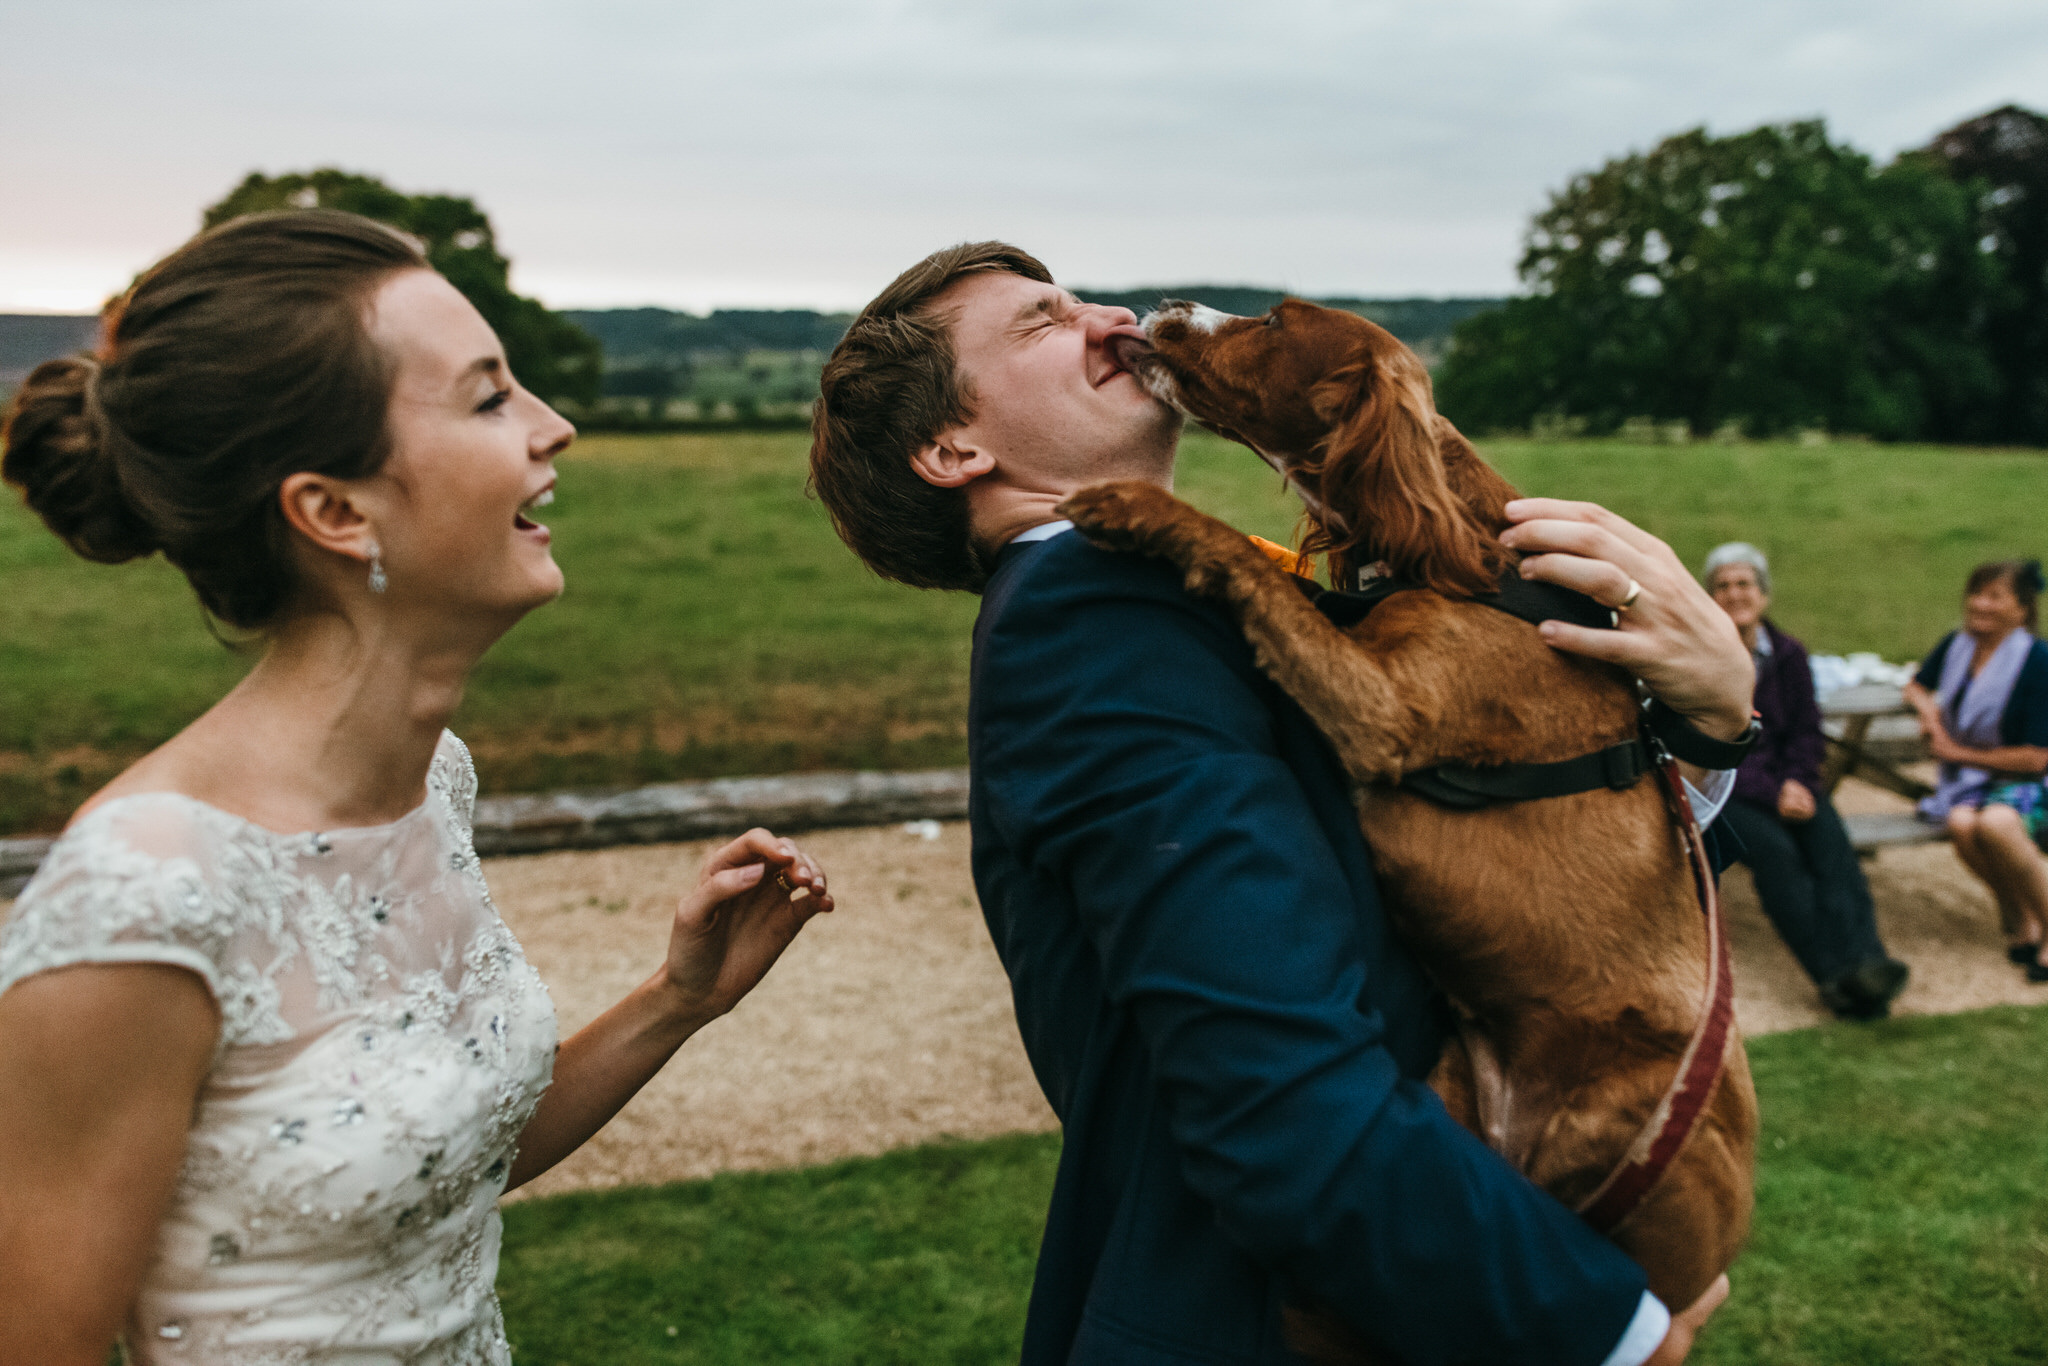 Dog kisses groom at wedding